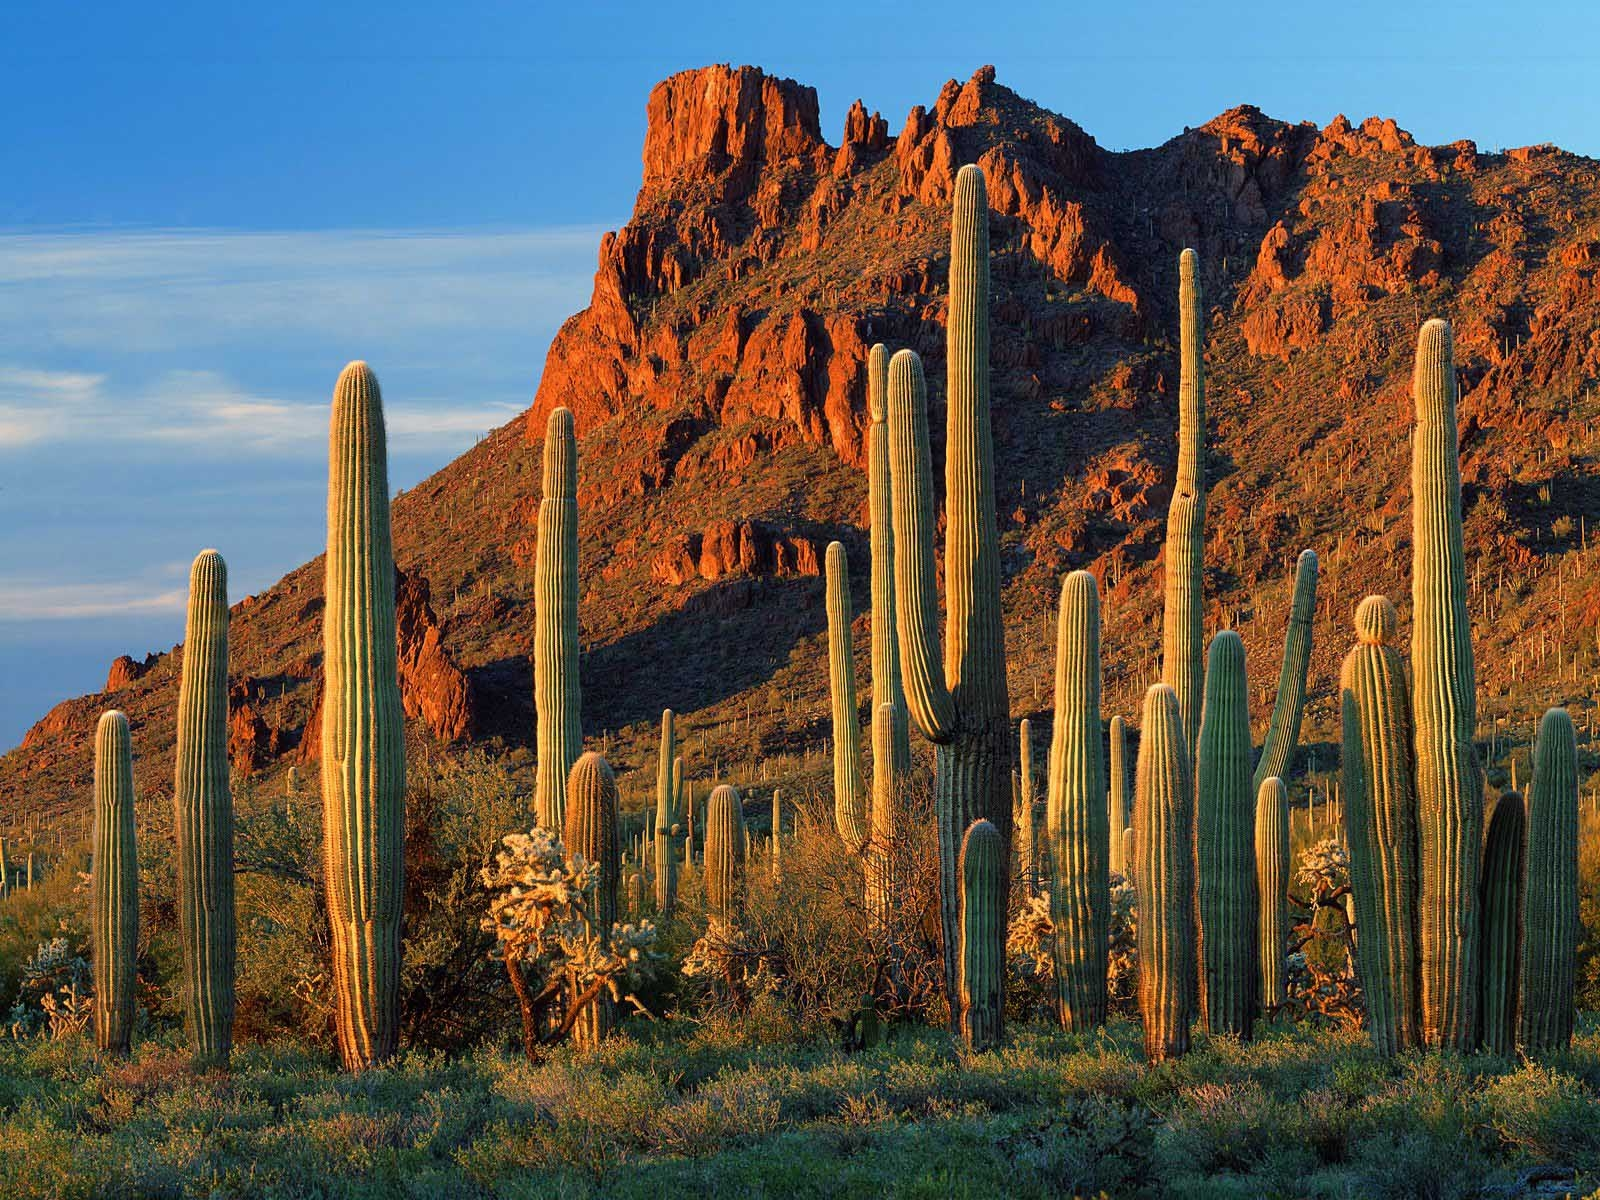 arizona s economy poised for continued growth office of the